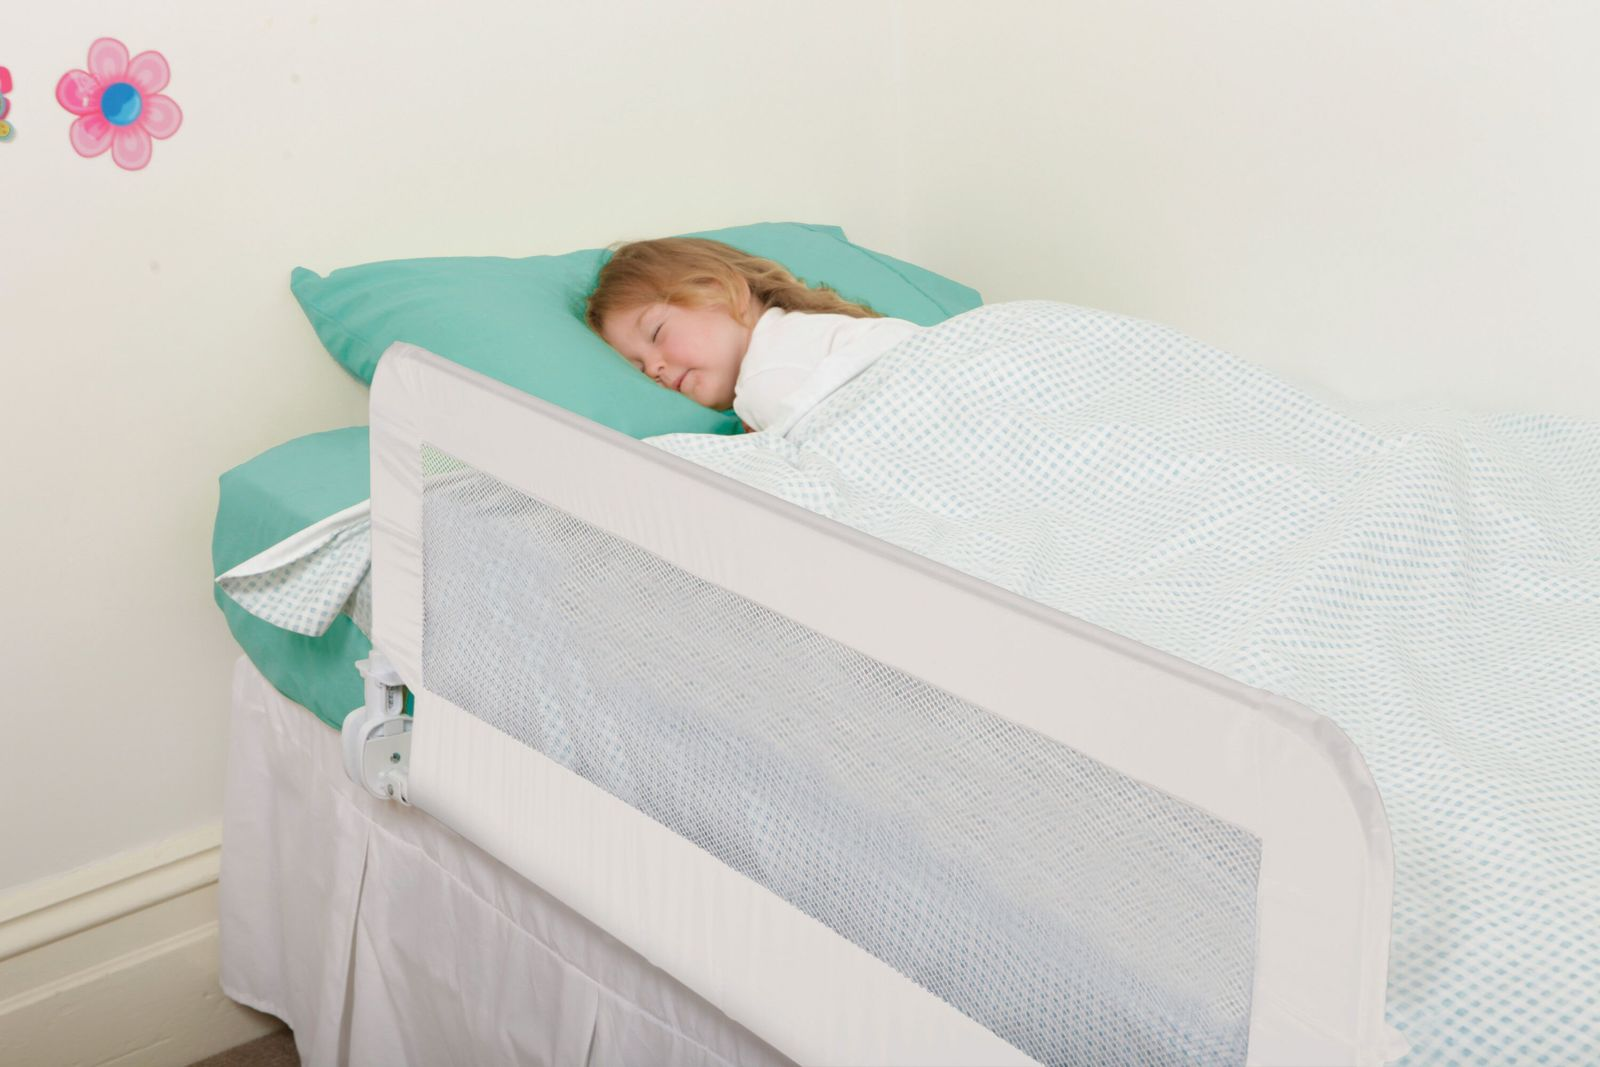 Dreambaby Phoenix Bed Rail image